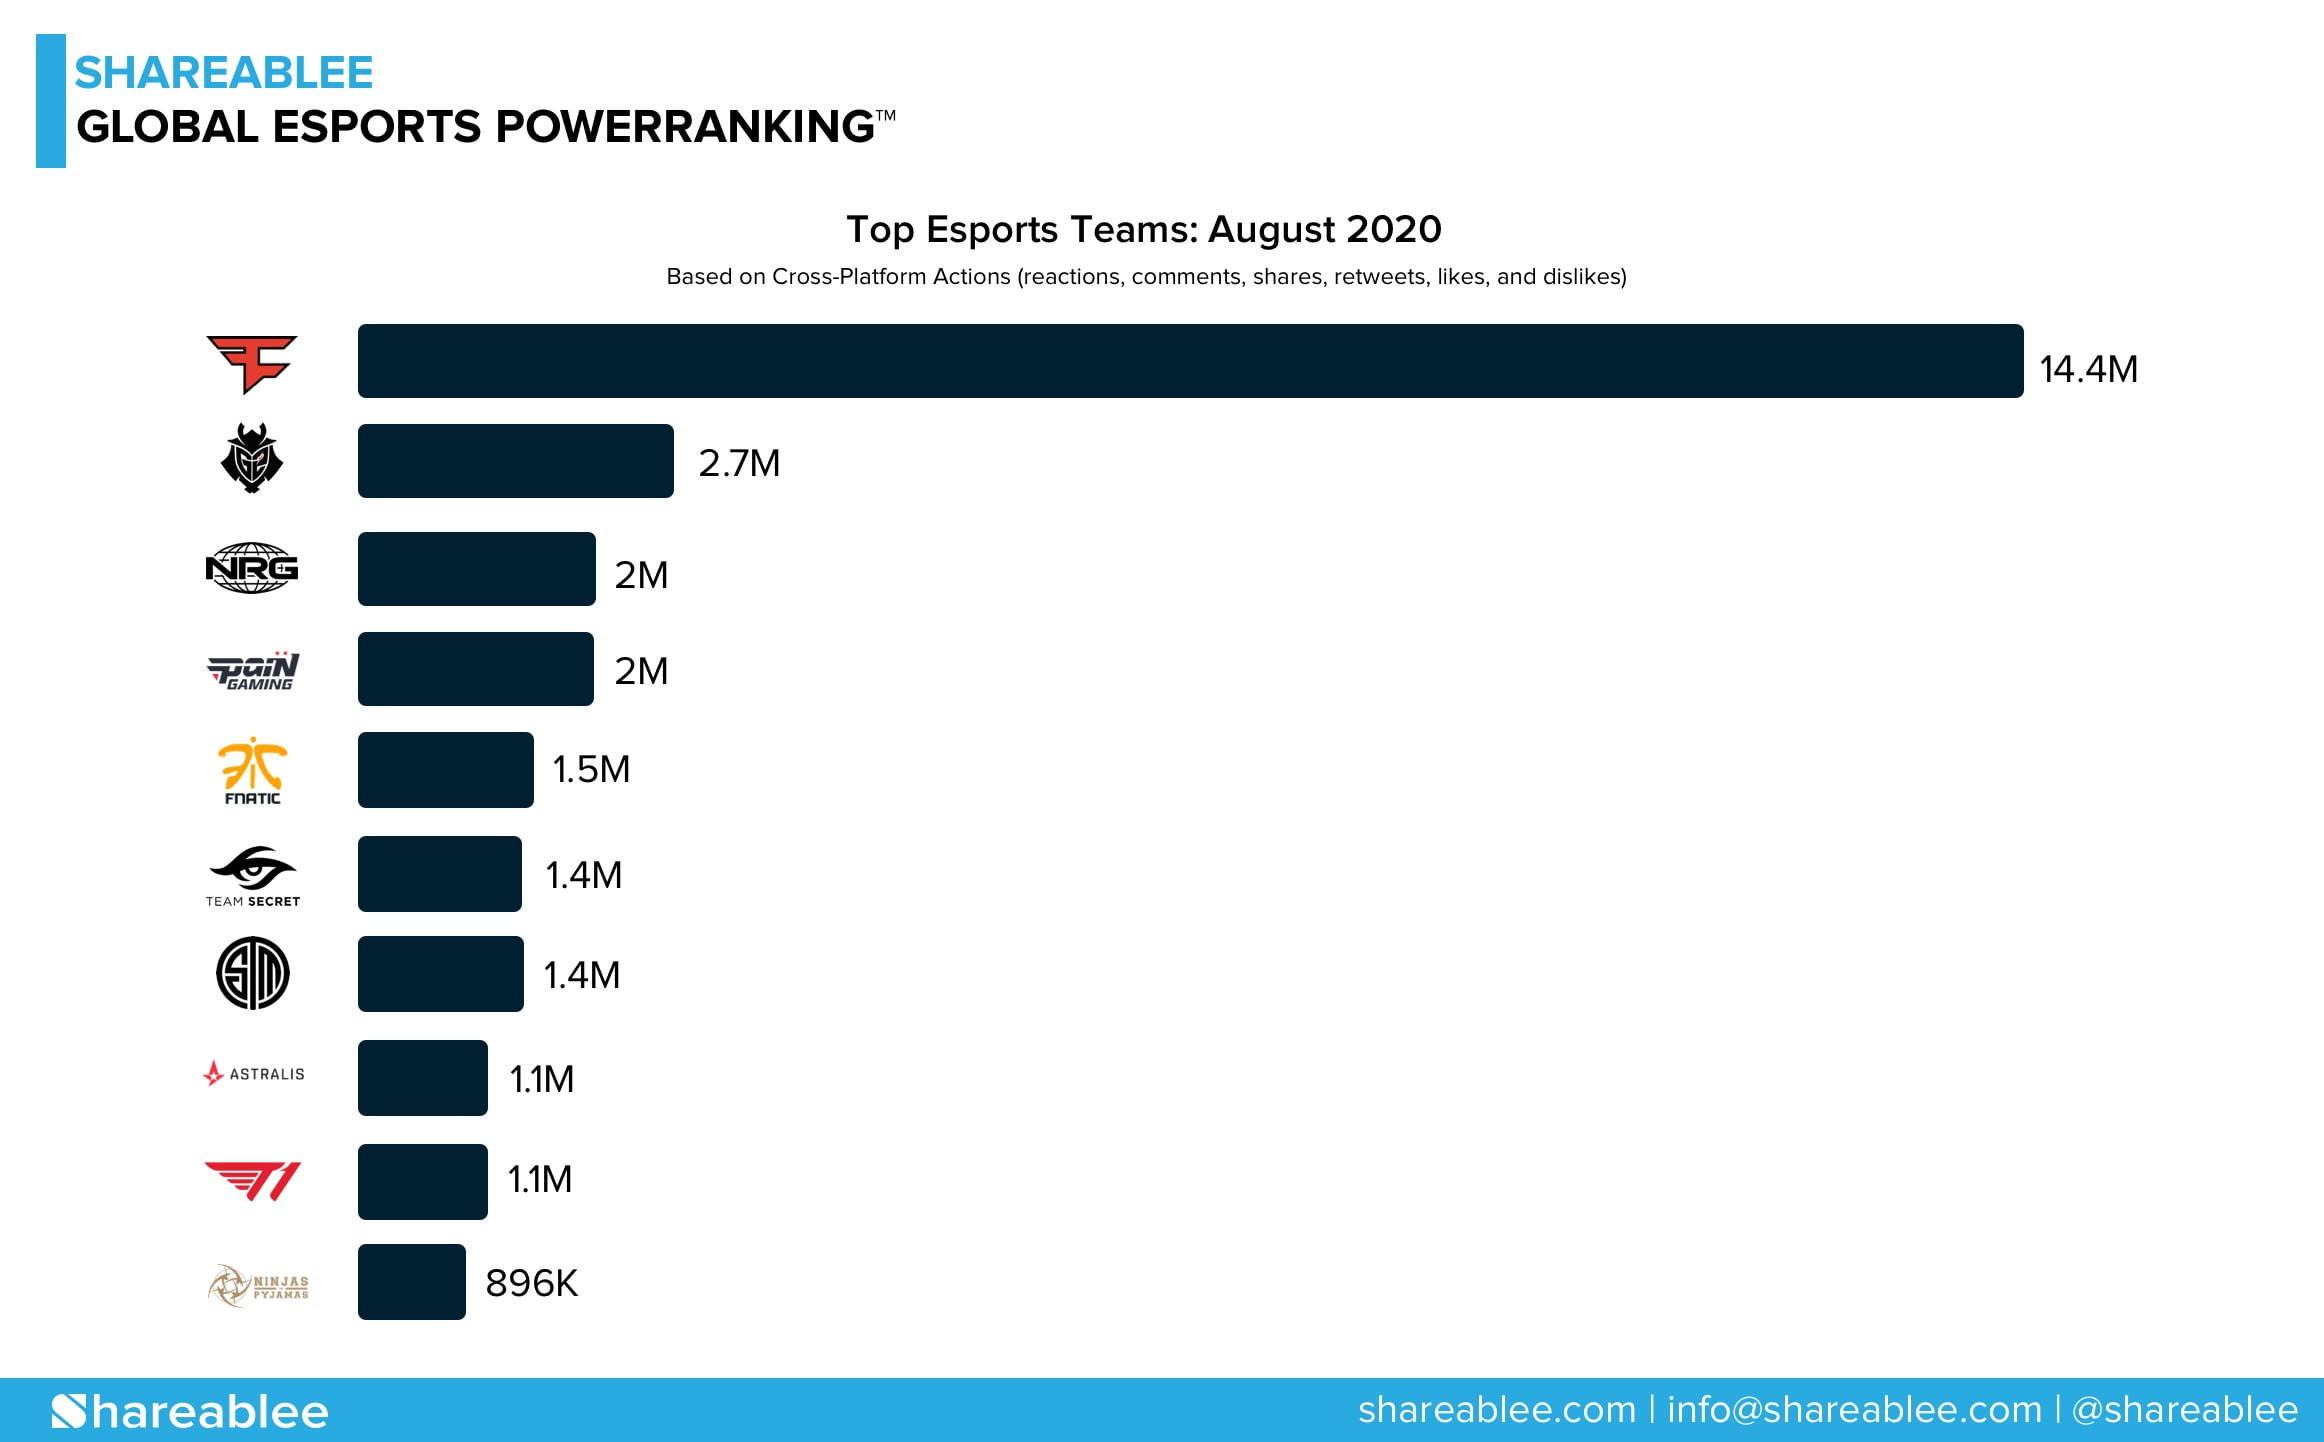 Shareablee Releases Inaugural Global Esports PowerRanking™ for August 2020